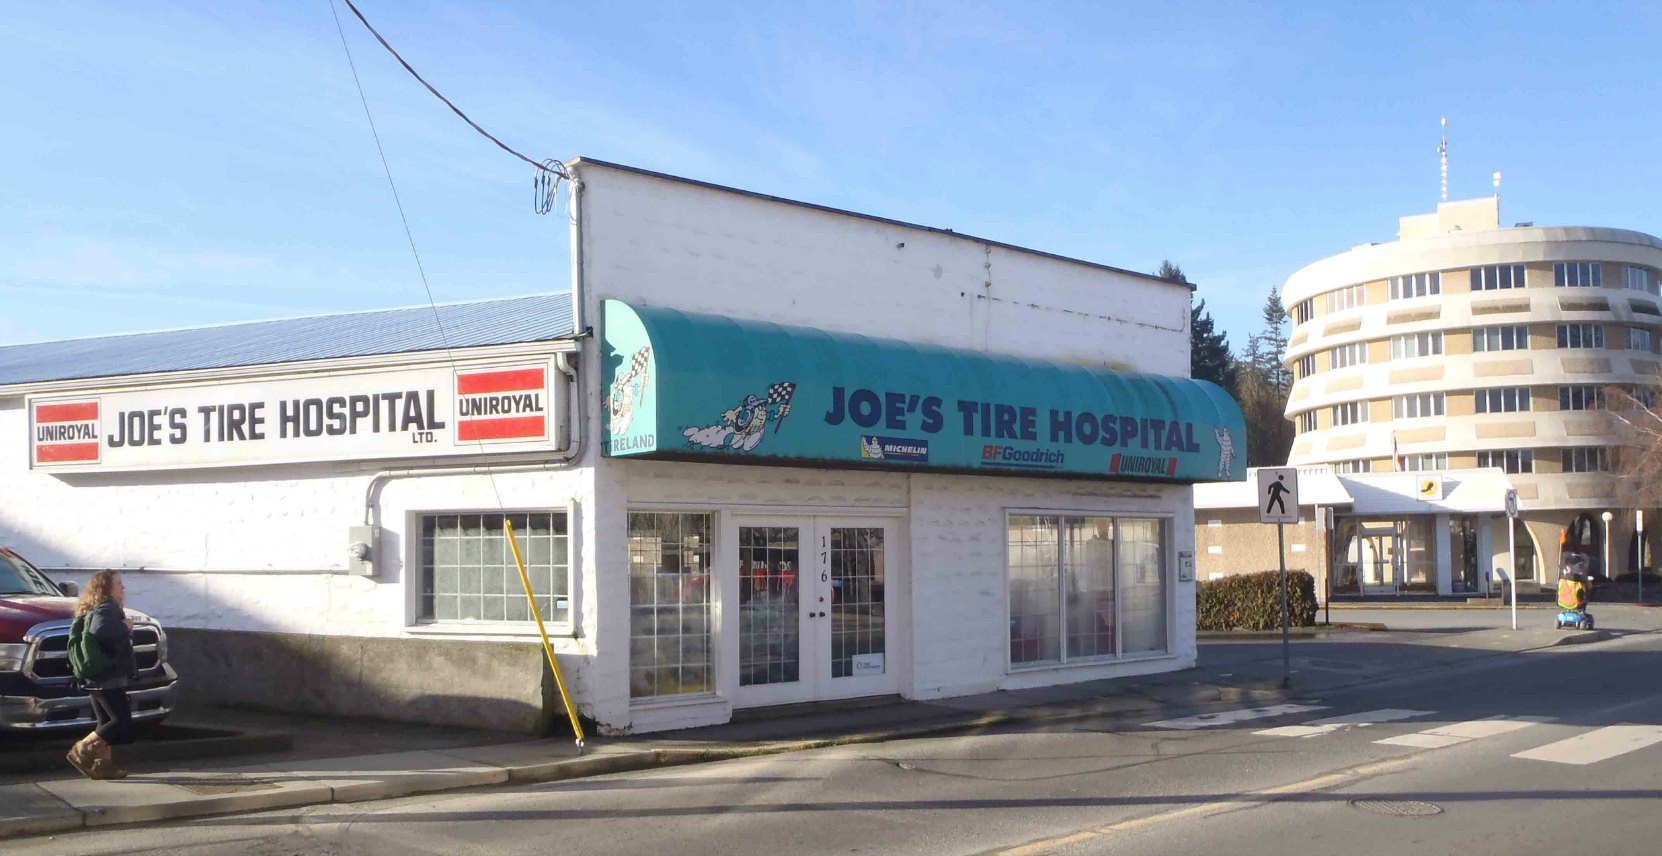 Joe's Tire Hospital, Government Street